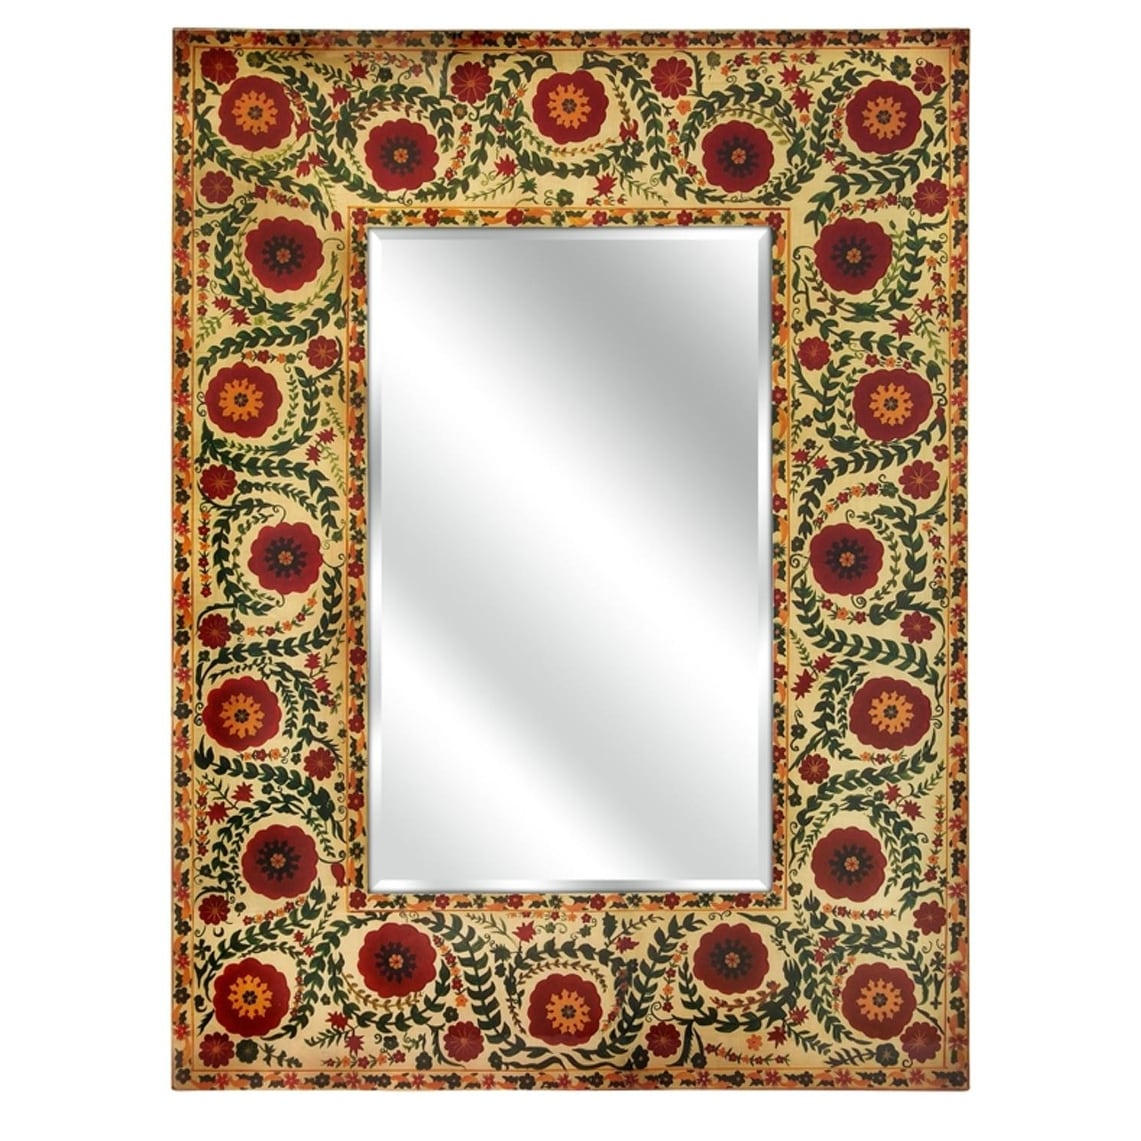 40 Red And Orange Floral Tapestry Decorative Wall Mirror Free